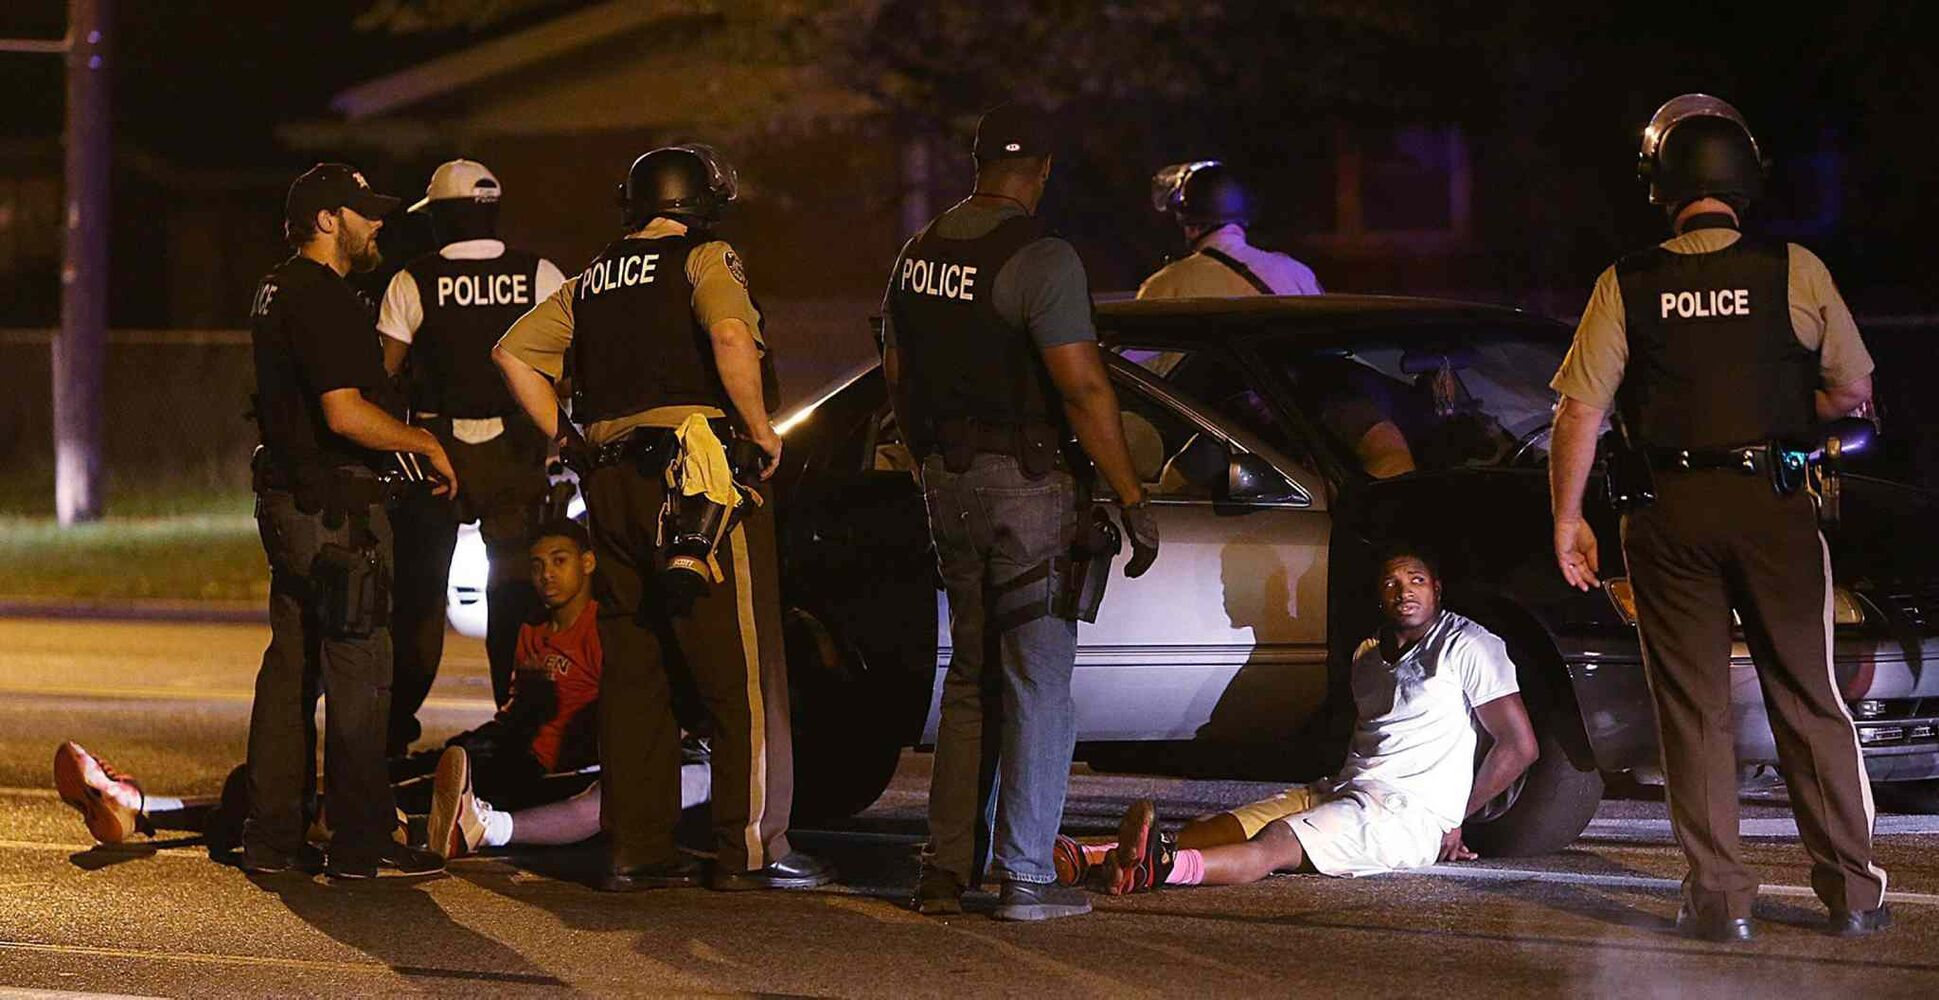 Police search the vehicle of three men they believed may have been involved in an assault on a man with a dog. Two of the vehicle's occupants were arrested and one was released.  (Chris Lee / St. Louis Post-Dispatch)